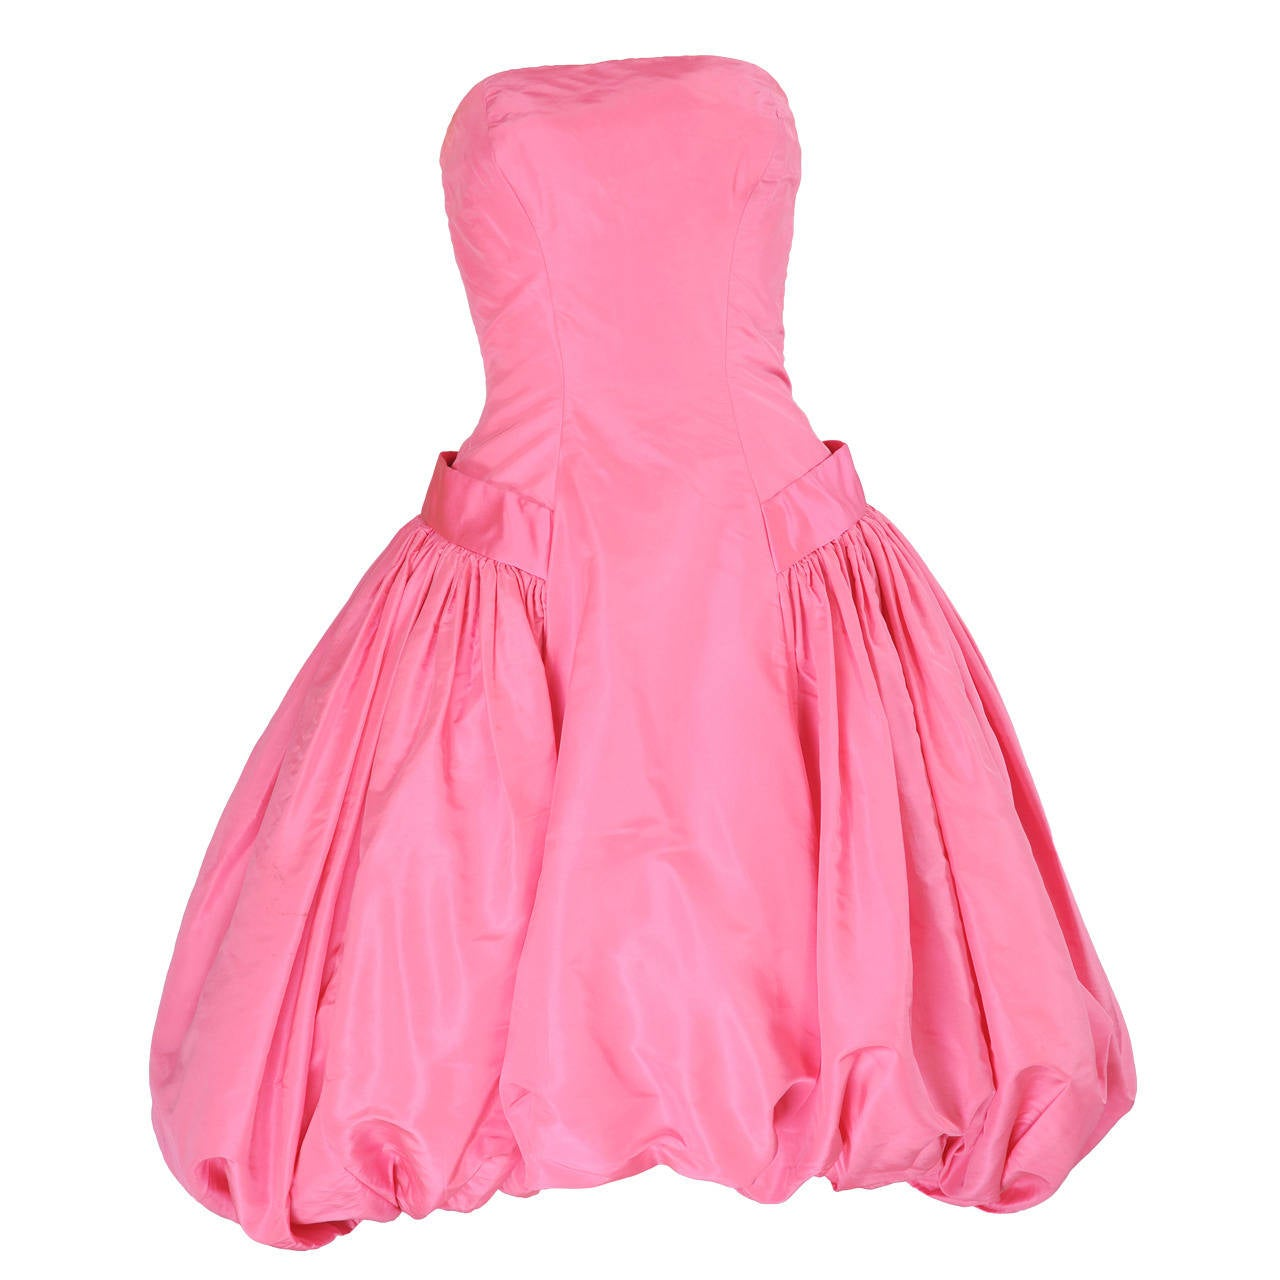 1950's Helena Barbieri Strapless Pink Silk Bubble Hem Evening Dress For Sale